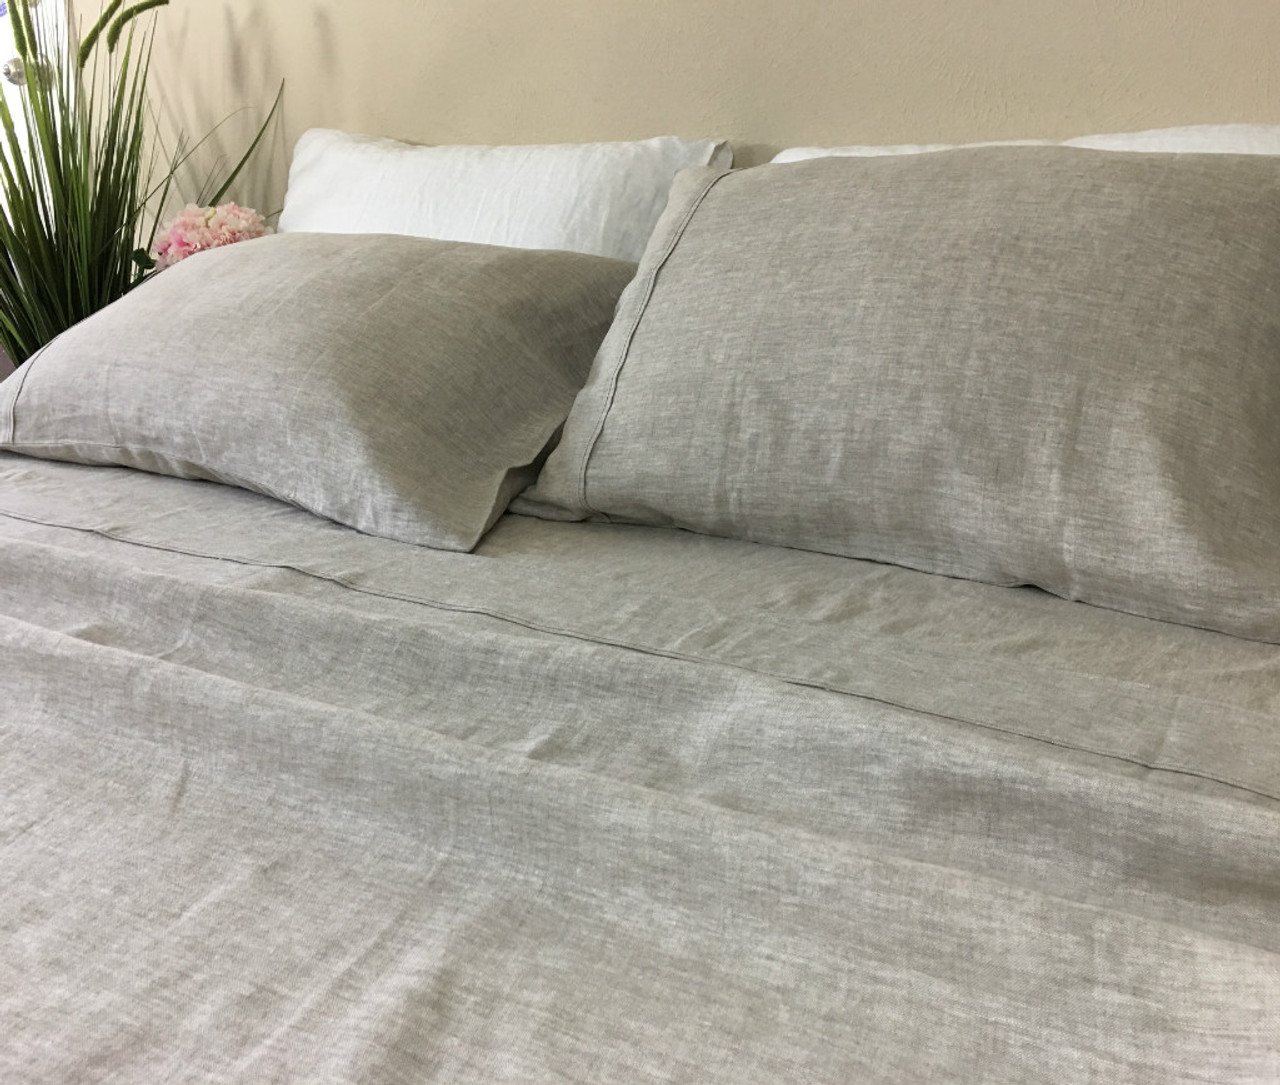 Natural Linen Sheets Set   Medium Weight Linen